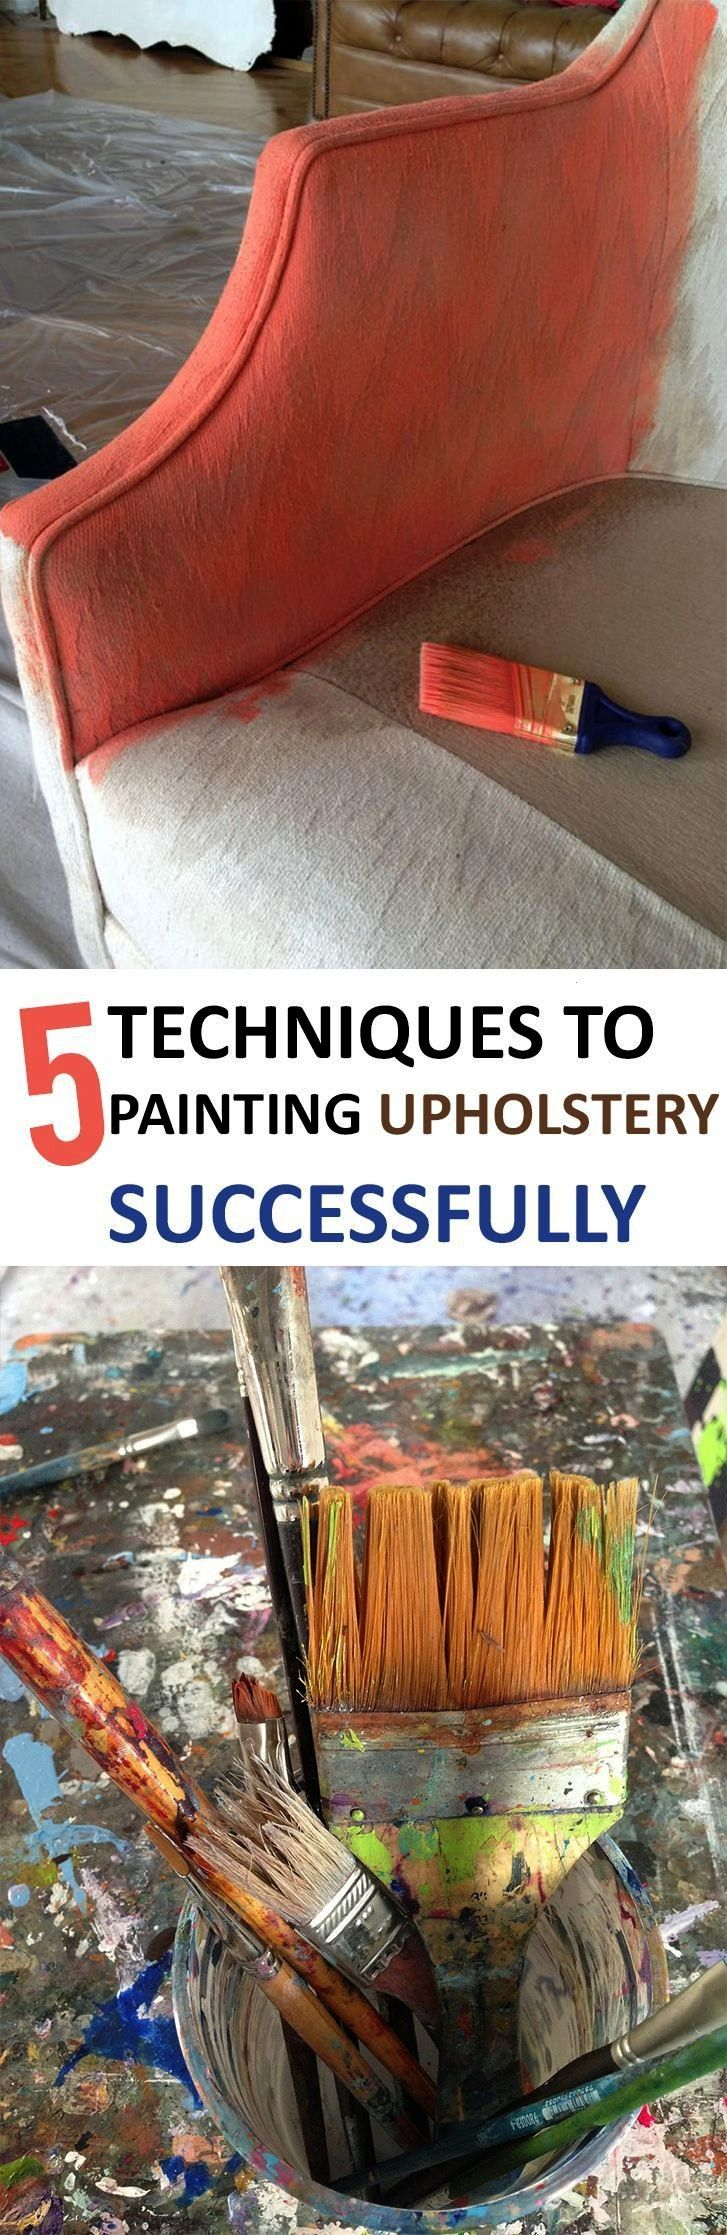 #successfully #techniques #upholstery #painting #to #55 Techniques to Painting Upholstery Successfully 5 Techniques to Painting Upholstery Successfully,5 Techniques to Painting Upholstery Successfully,  5 Genius Paint Hacks | Painting a room (or a piece of furniture, or a staircase) is a messy job. And doing it right requires a serious time commitment. But if you're still putting up with smelly paint fumes and lengthy cleanup sessions, there's a better way. These brilliant painting tips w...